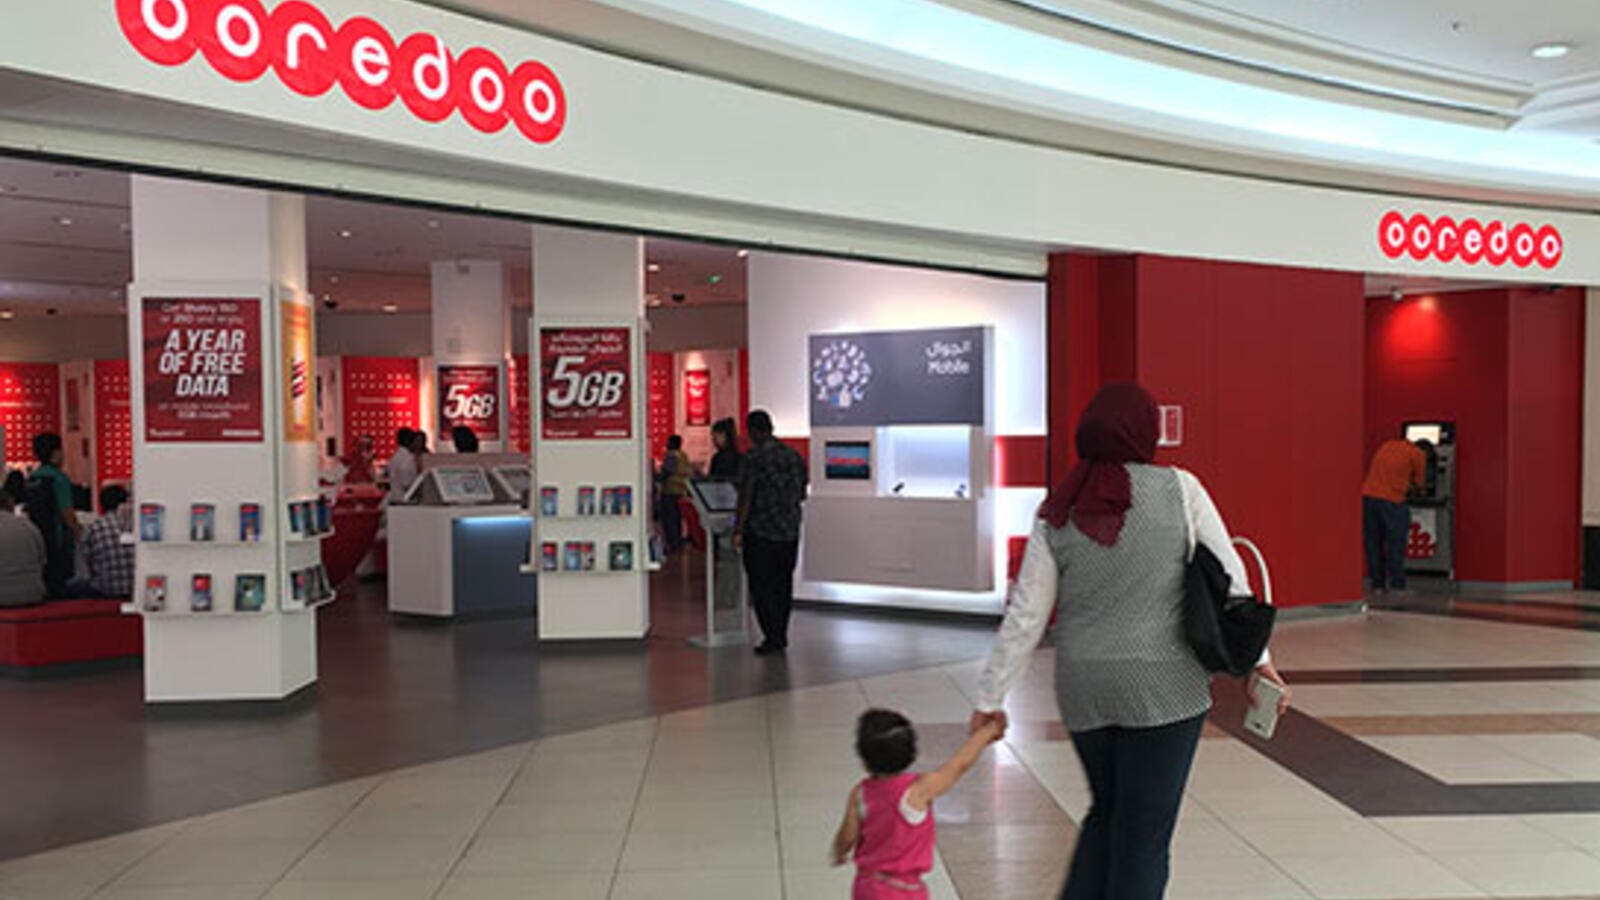 "By refusing to grant access despite requests from the authority, it was concluded that Ooredoo had damaged competition and ""likely maintained artificially high prices for consumers"". (Wearandpoint.com)"